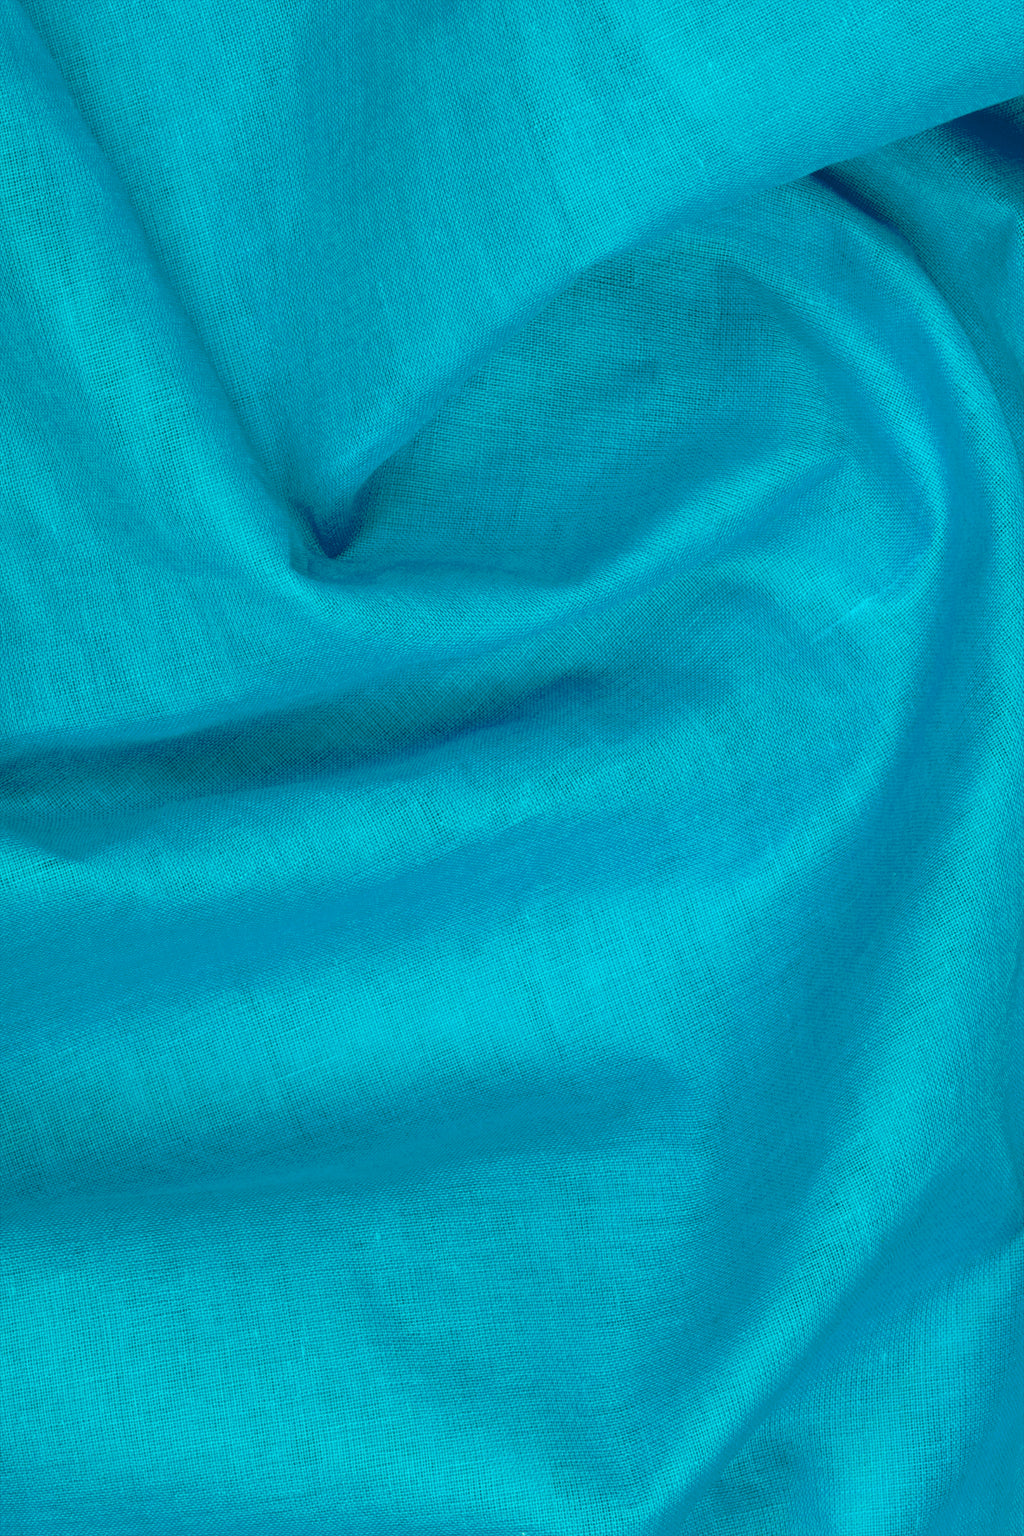 Blue Turban Cloth